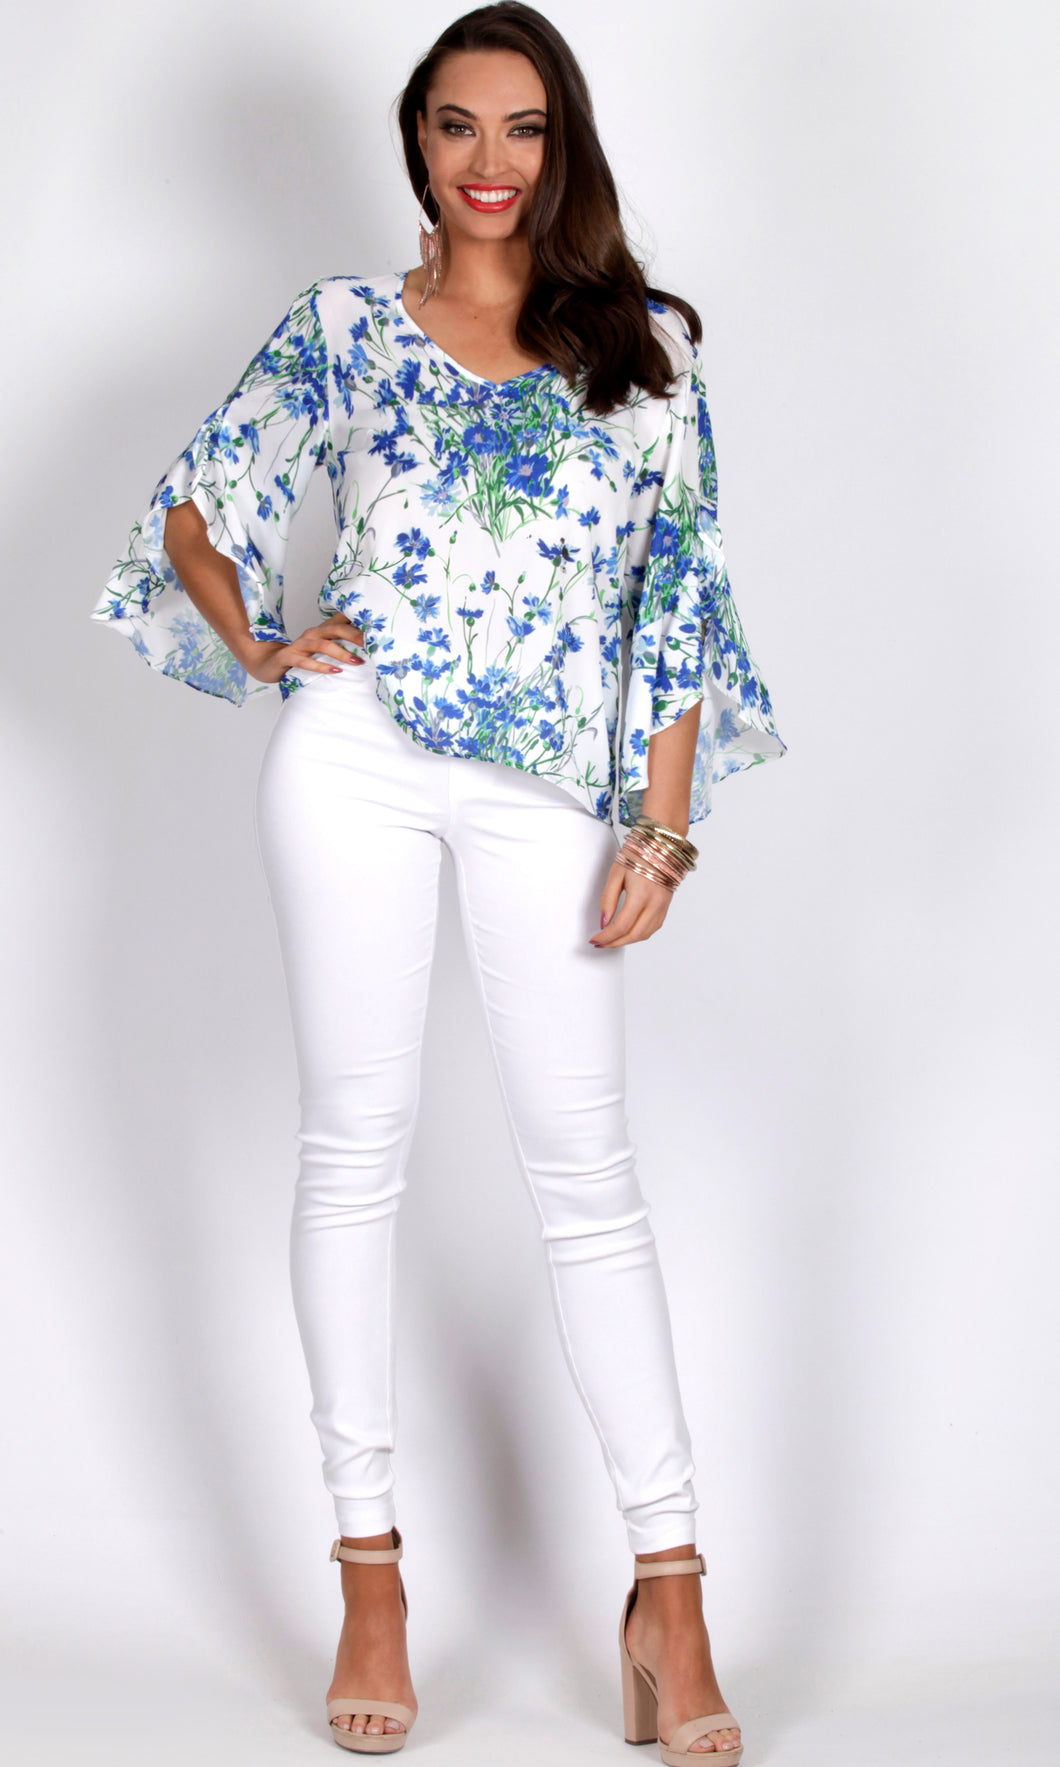 RV0998-4TB RELAXED RUFFLE BLUE BLOSSOM TOP (Pack)